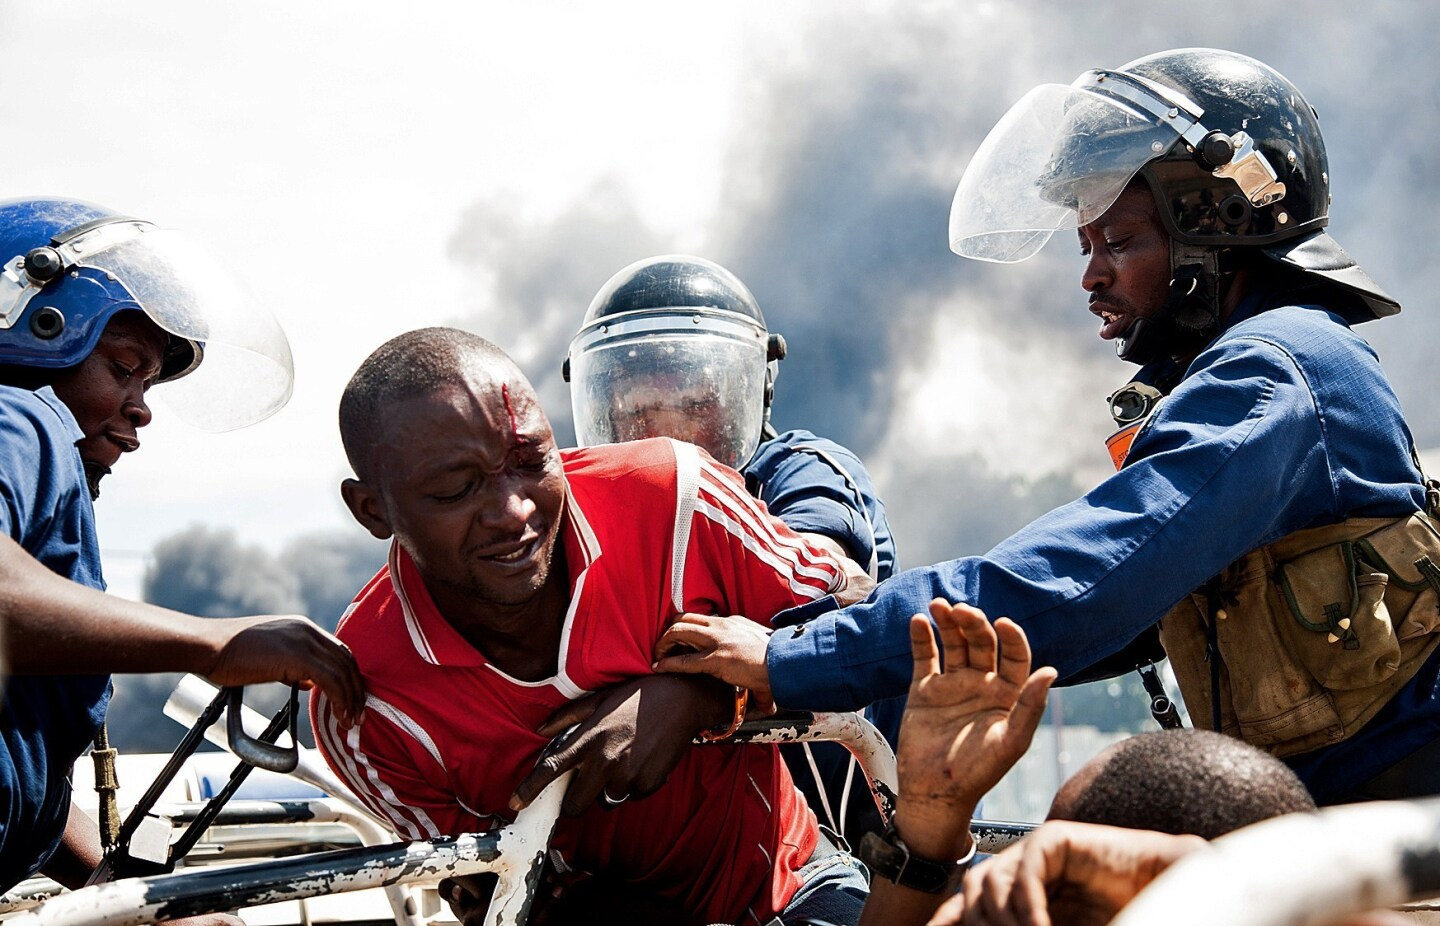 A man is lifted by police during a protest in Bujumbura. A top Burundian general announced the overthrow of President Pierre Nkurunziza, following weeks of violent protests against the president's bid to stand for a third term. Nkurunziza asserted he remained in charge.